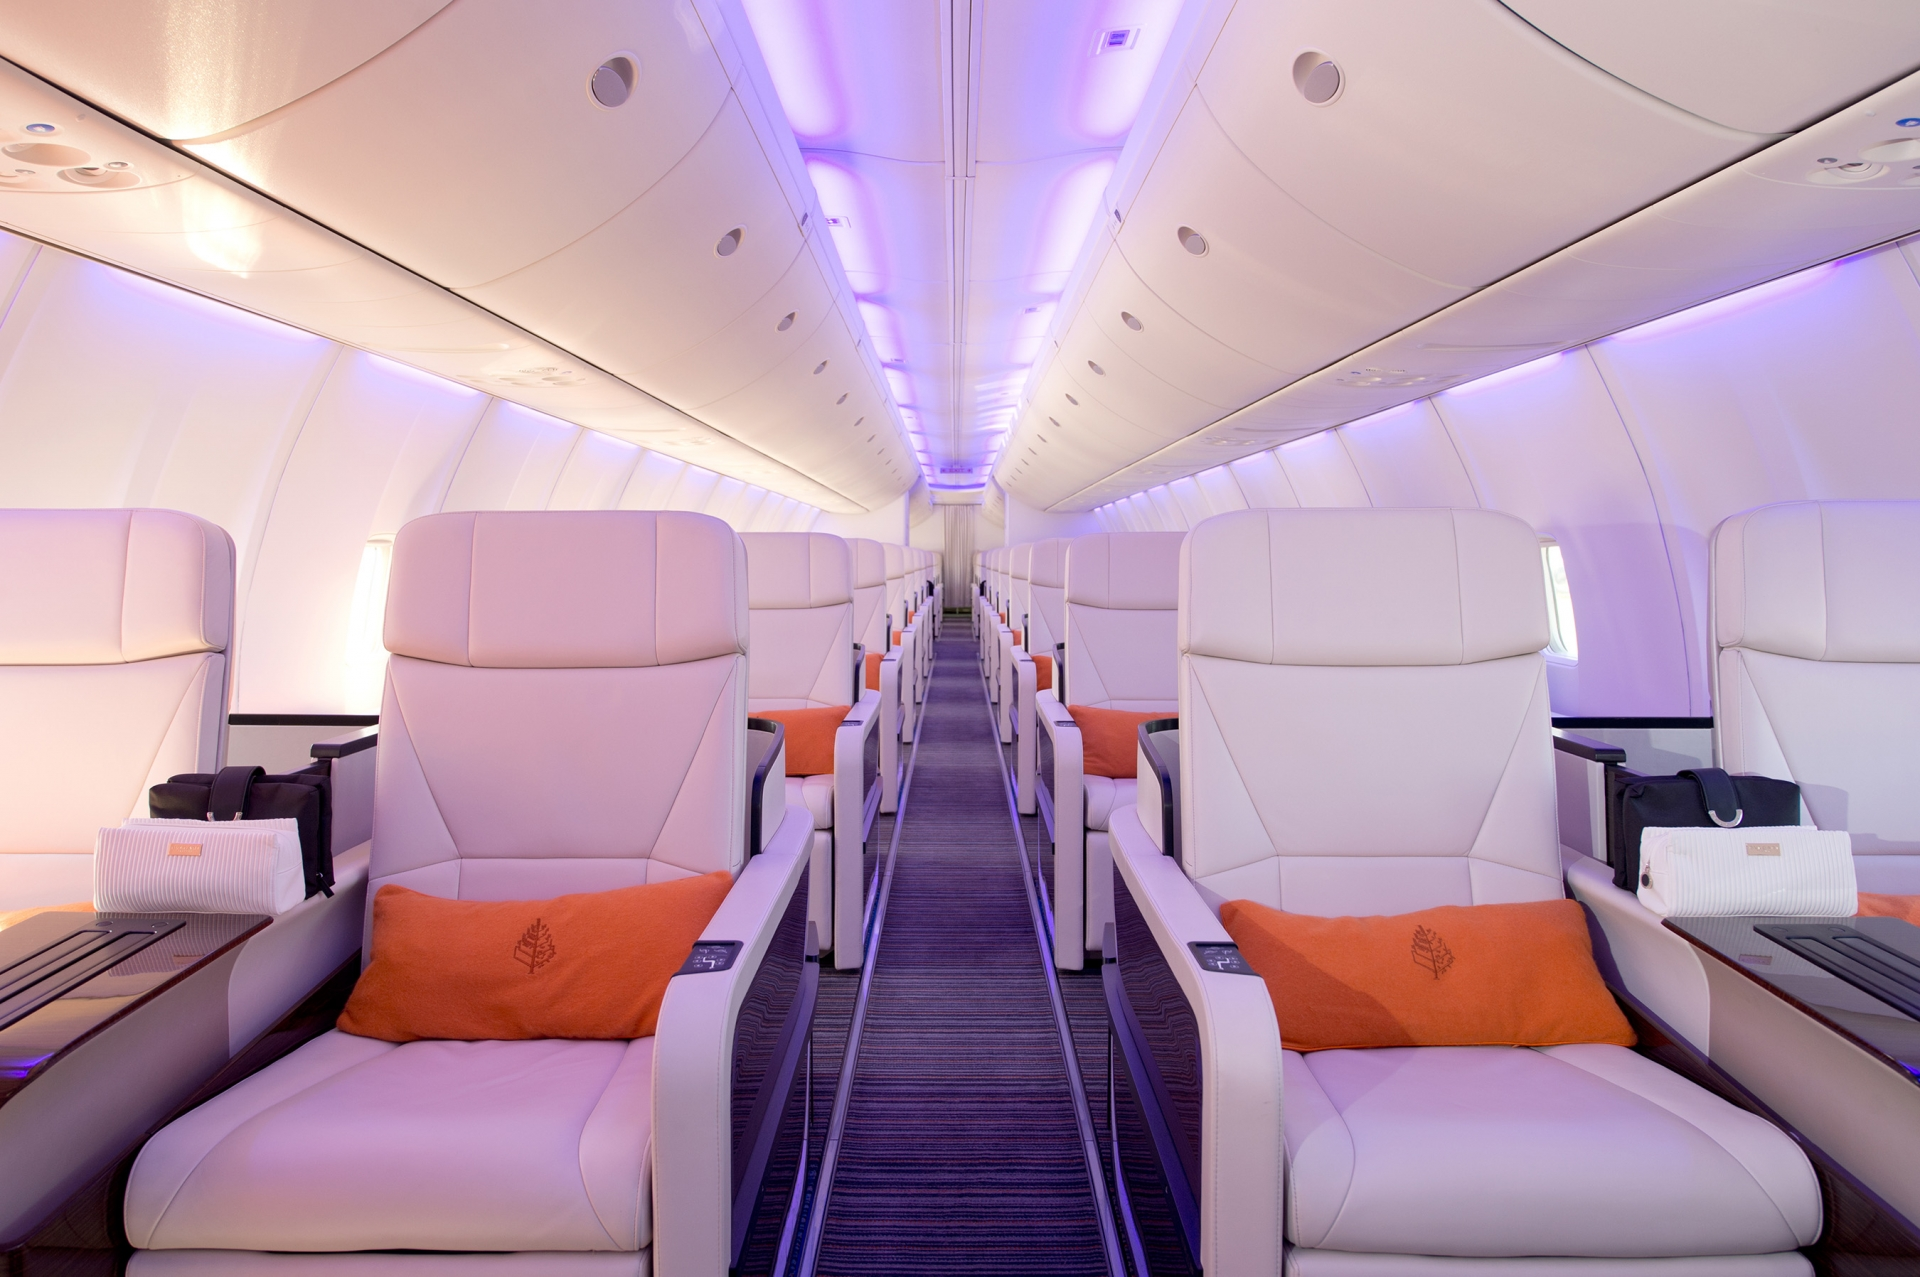 The Four Seasons Jet is a Boeing 757, fully customized with 52 seats